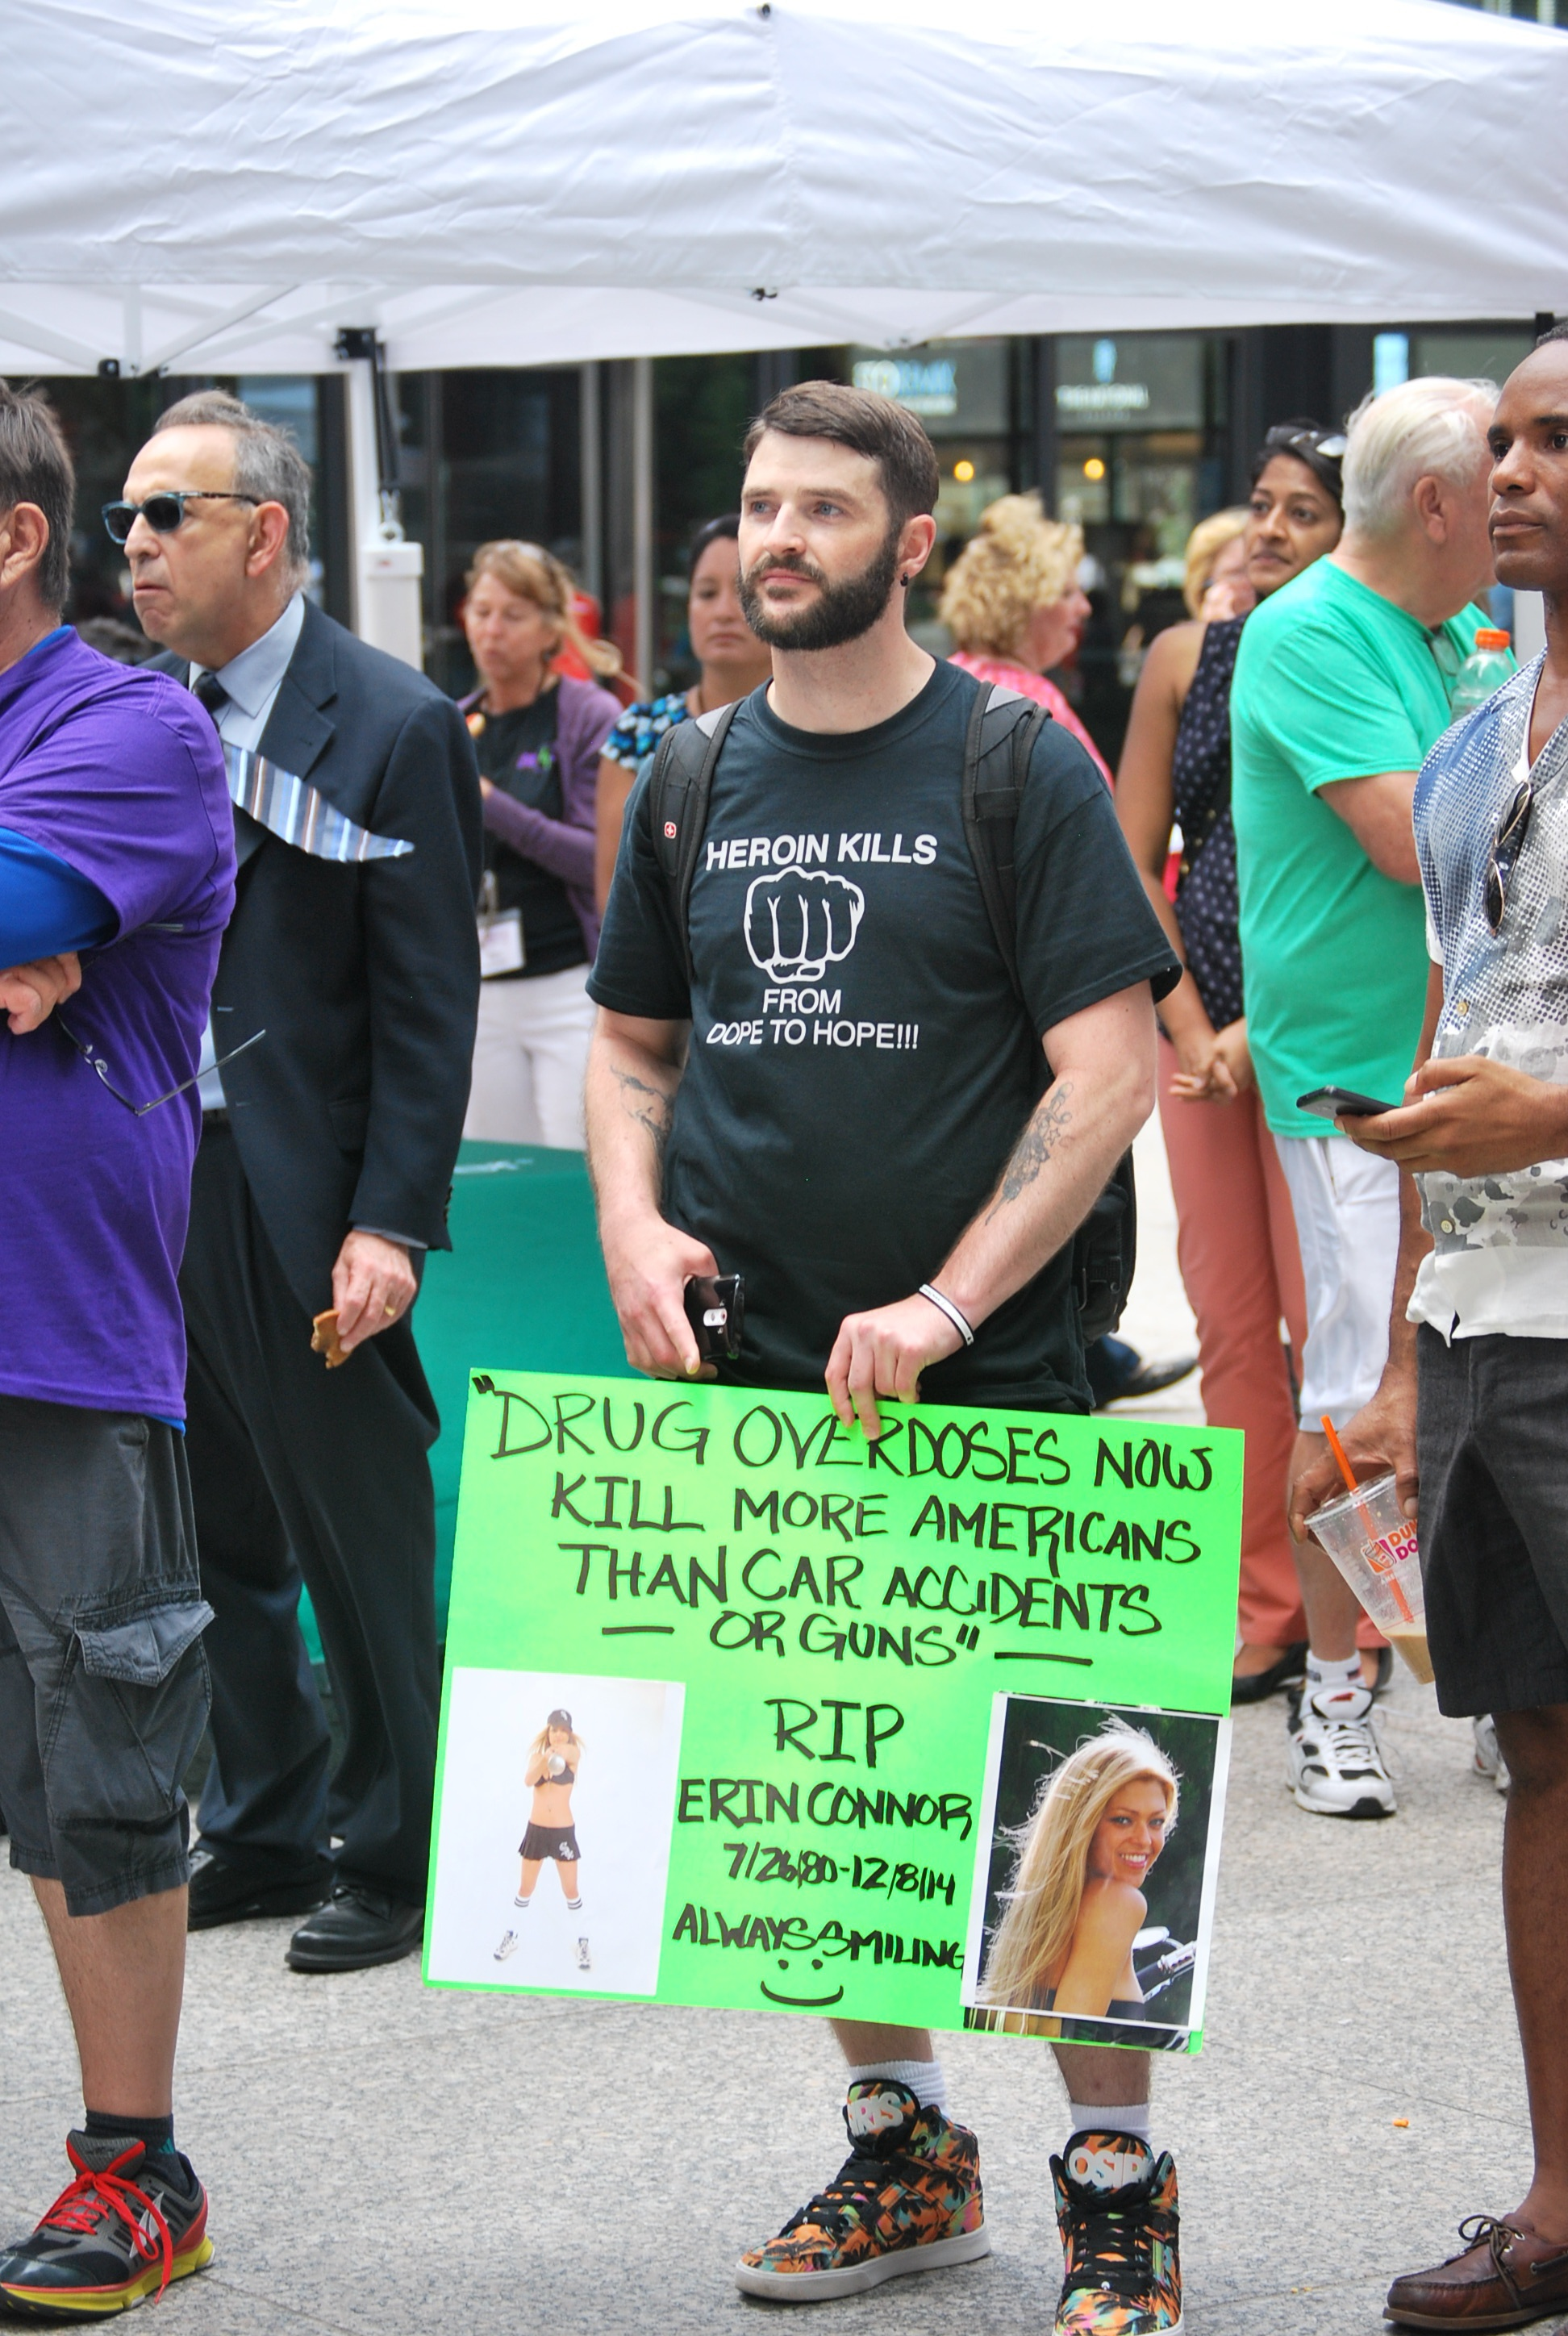 overdose_awareness_day_guy_holding_sign.jpg